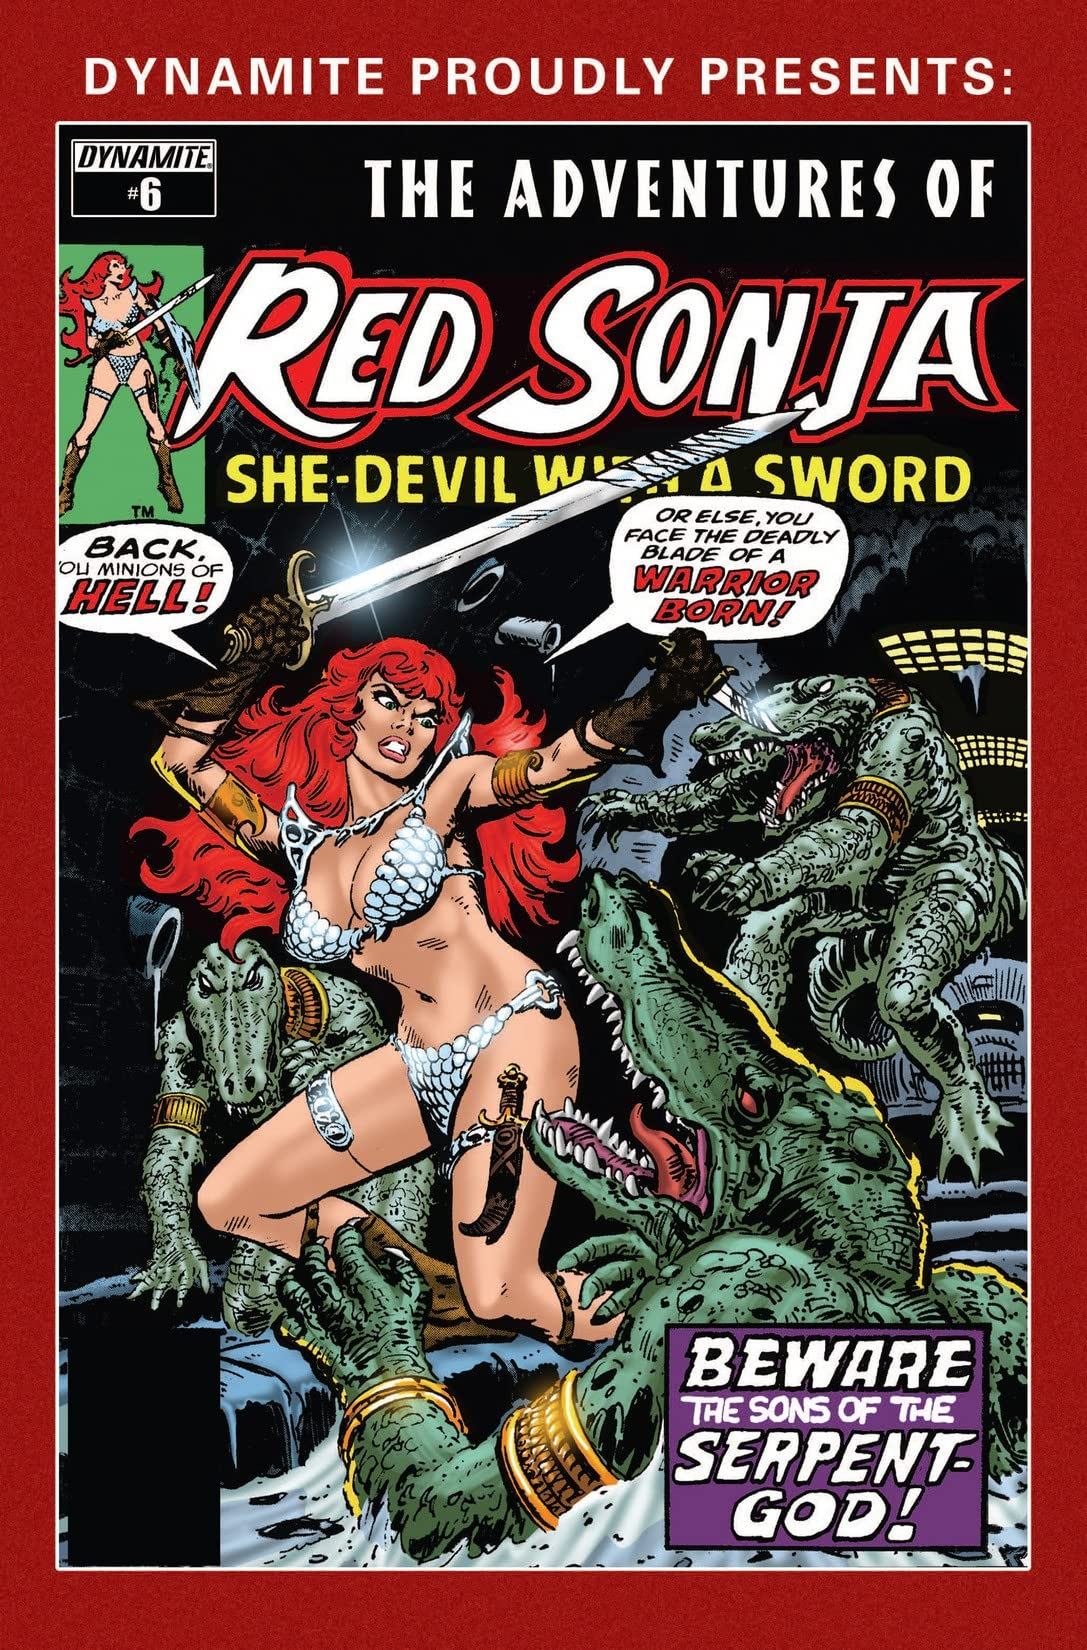 The Adventures of Red Sonja #6